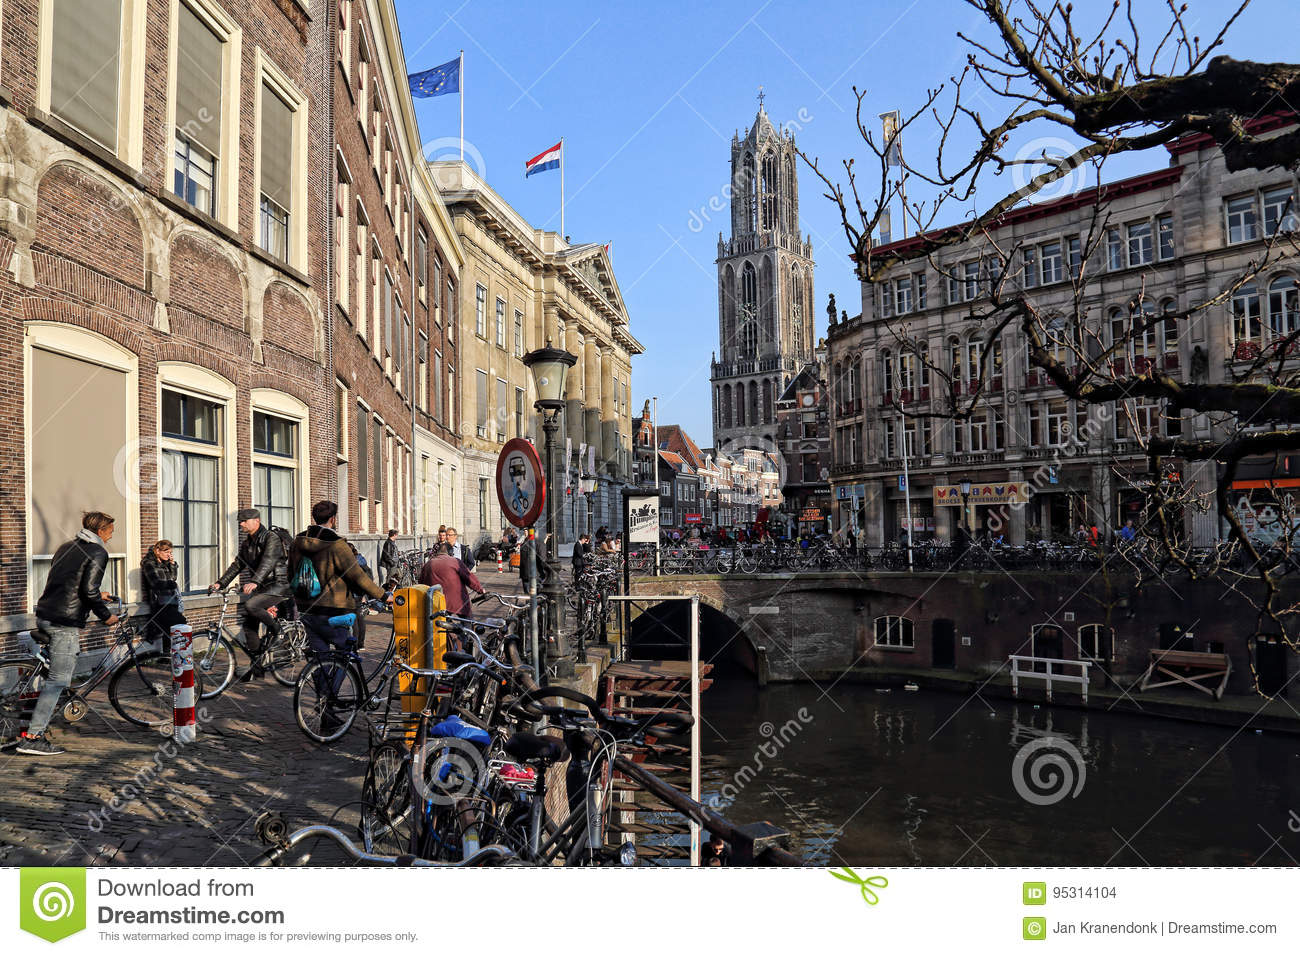 Utrecht, The Netherlands - March 16, 2017: People sit at restaurants on a  canal with Dutch flags and the church tower in the background in Utrecht,  ...